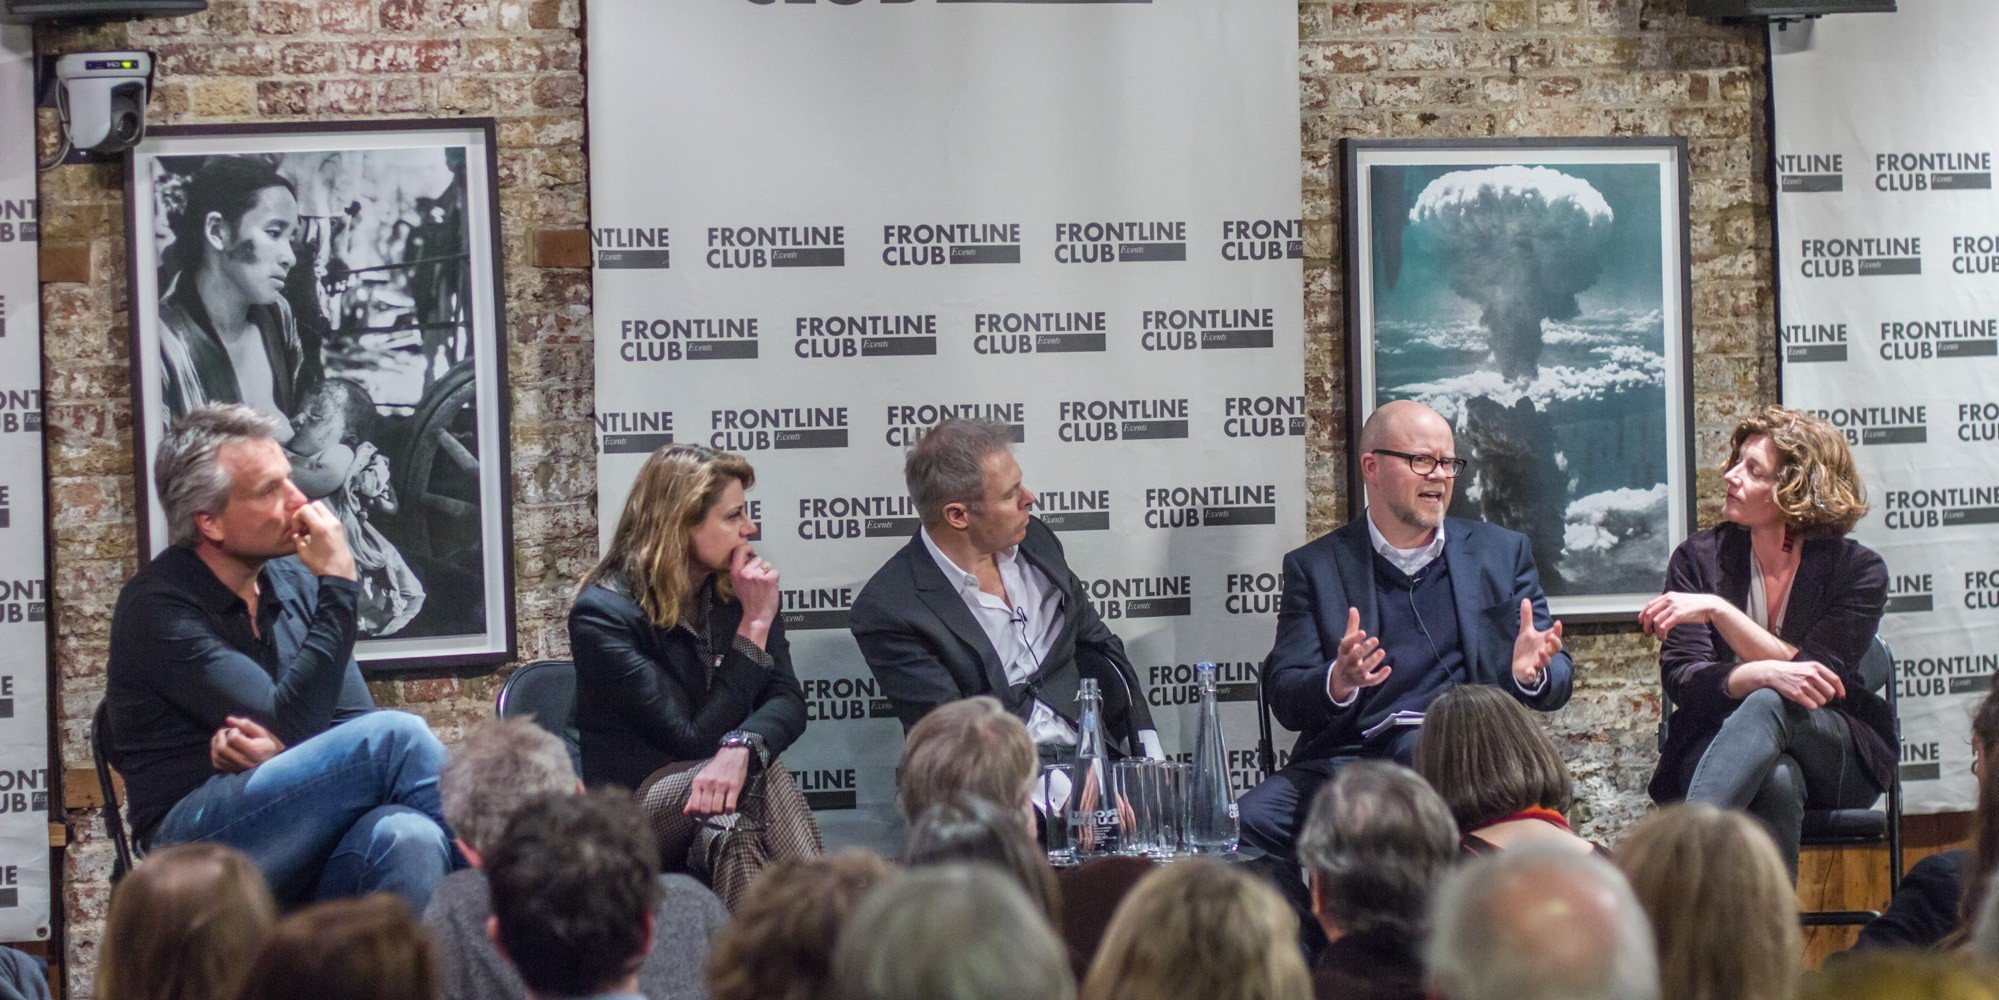 Toby Young argues for Brexit at the Frontline Club where his views are welcome to be heard. Joris Luyendijk, Annalisa Prias, Gavin Hewitt, Toby Young and Natelie Nougayrède. © Tolly Robinson 2016